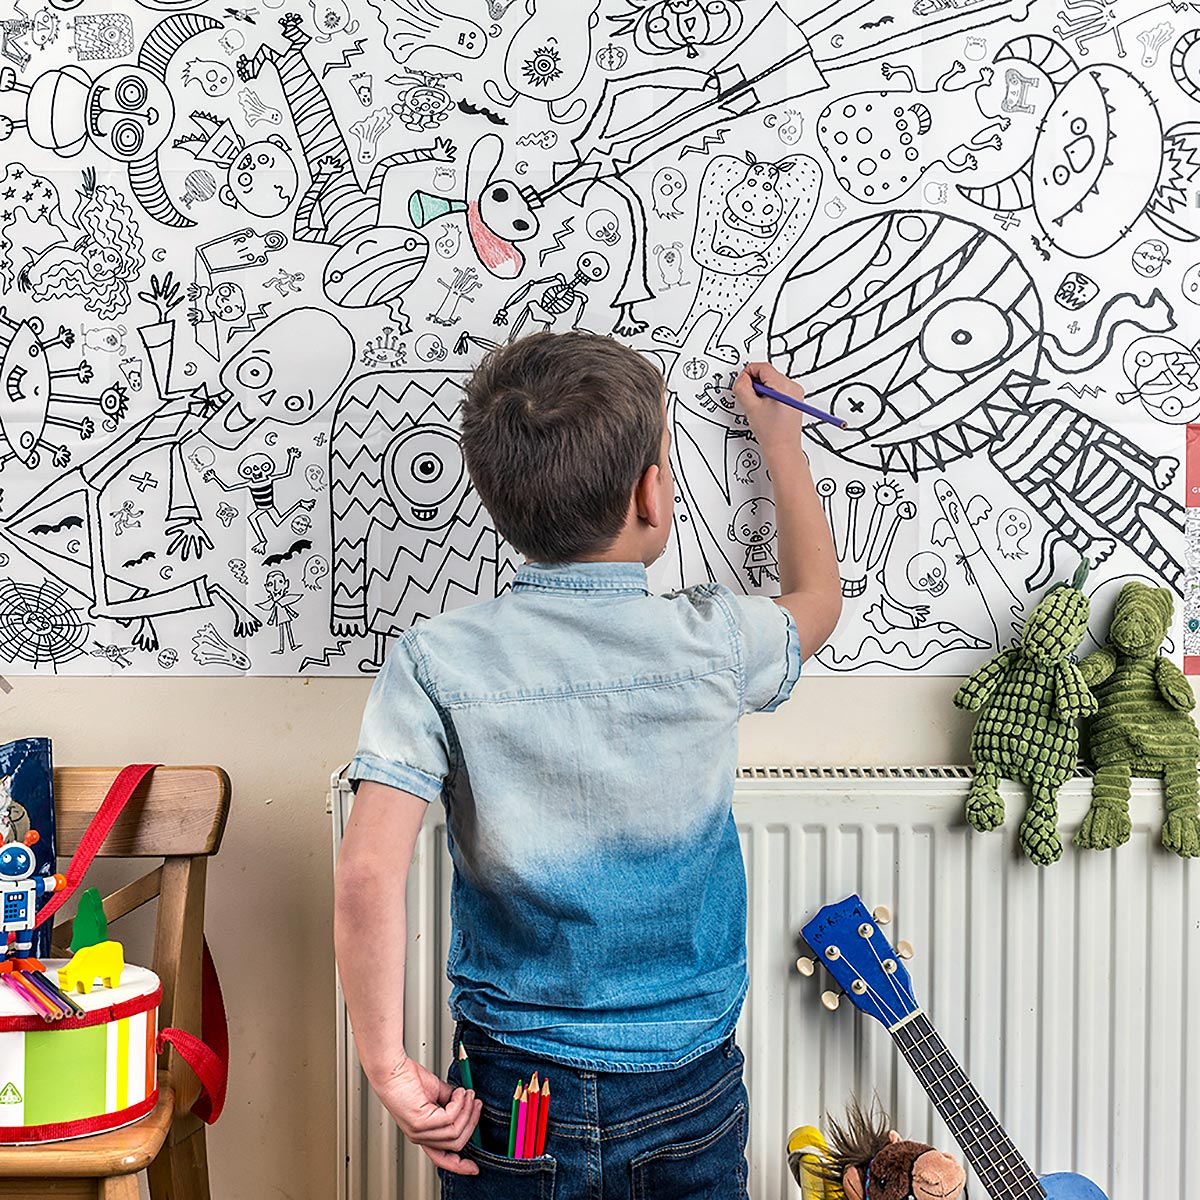 boy with crayons colouring in tablecloth hung on wall